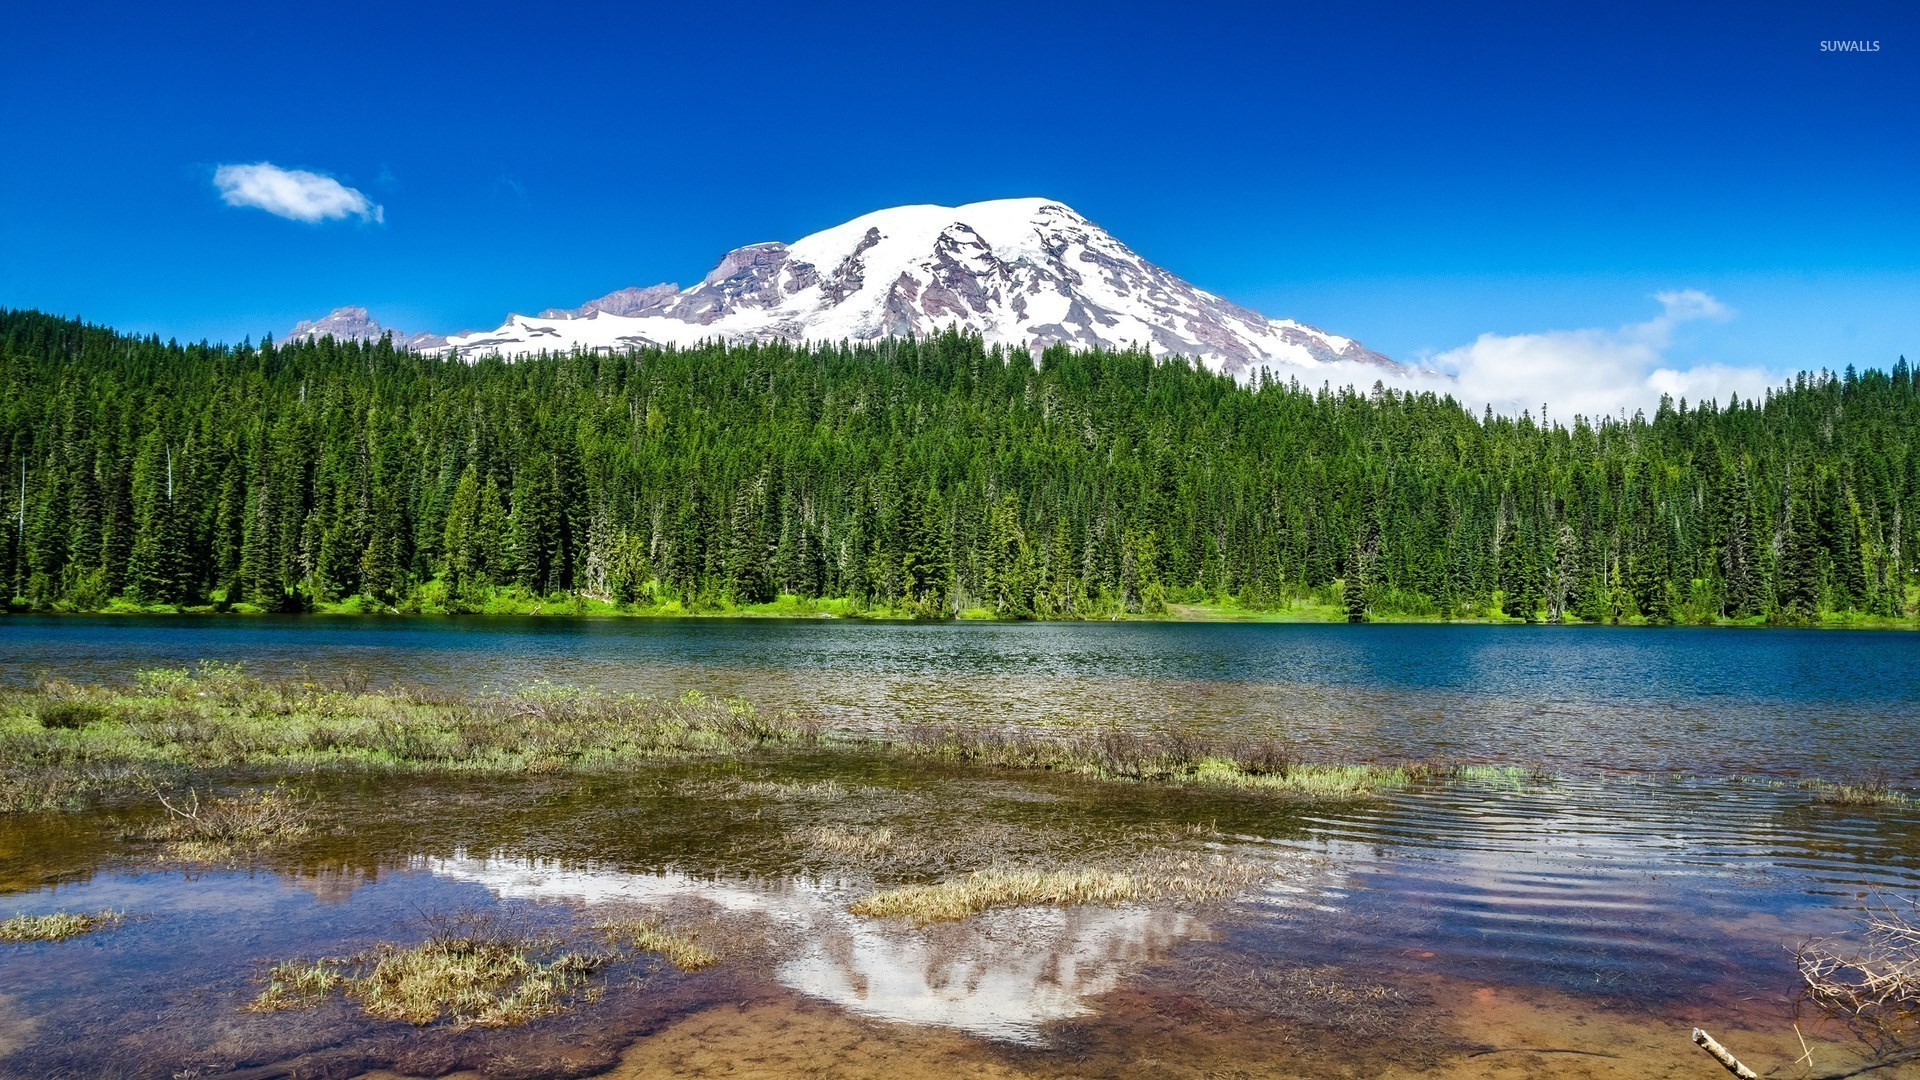 1920x1080 Mount Rainier wallpaper